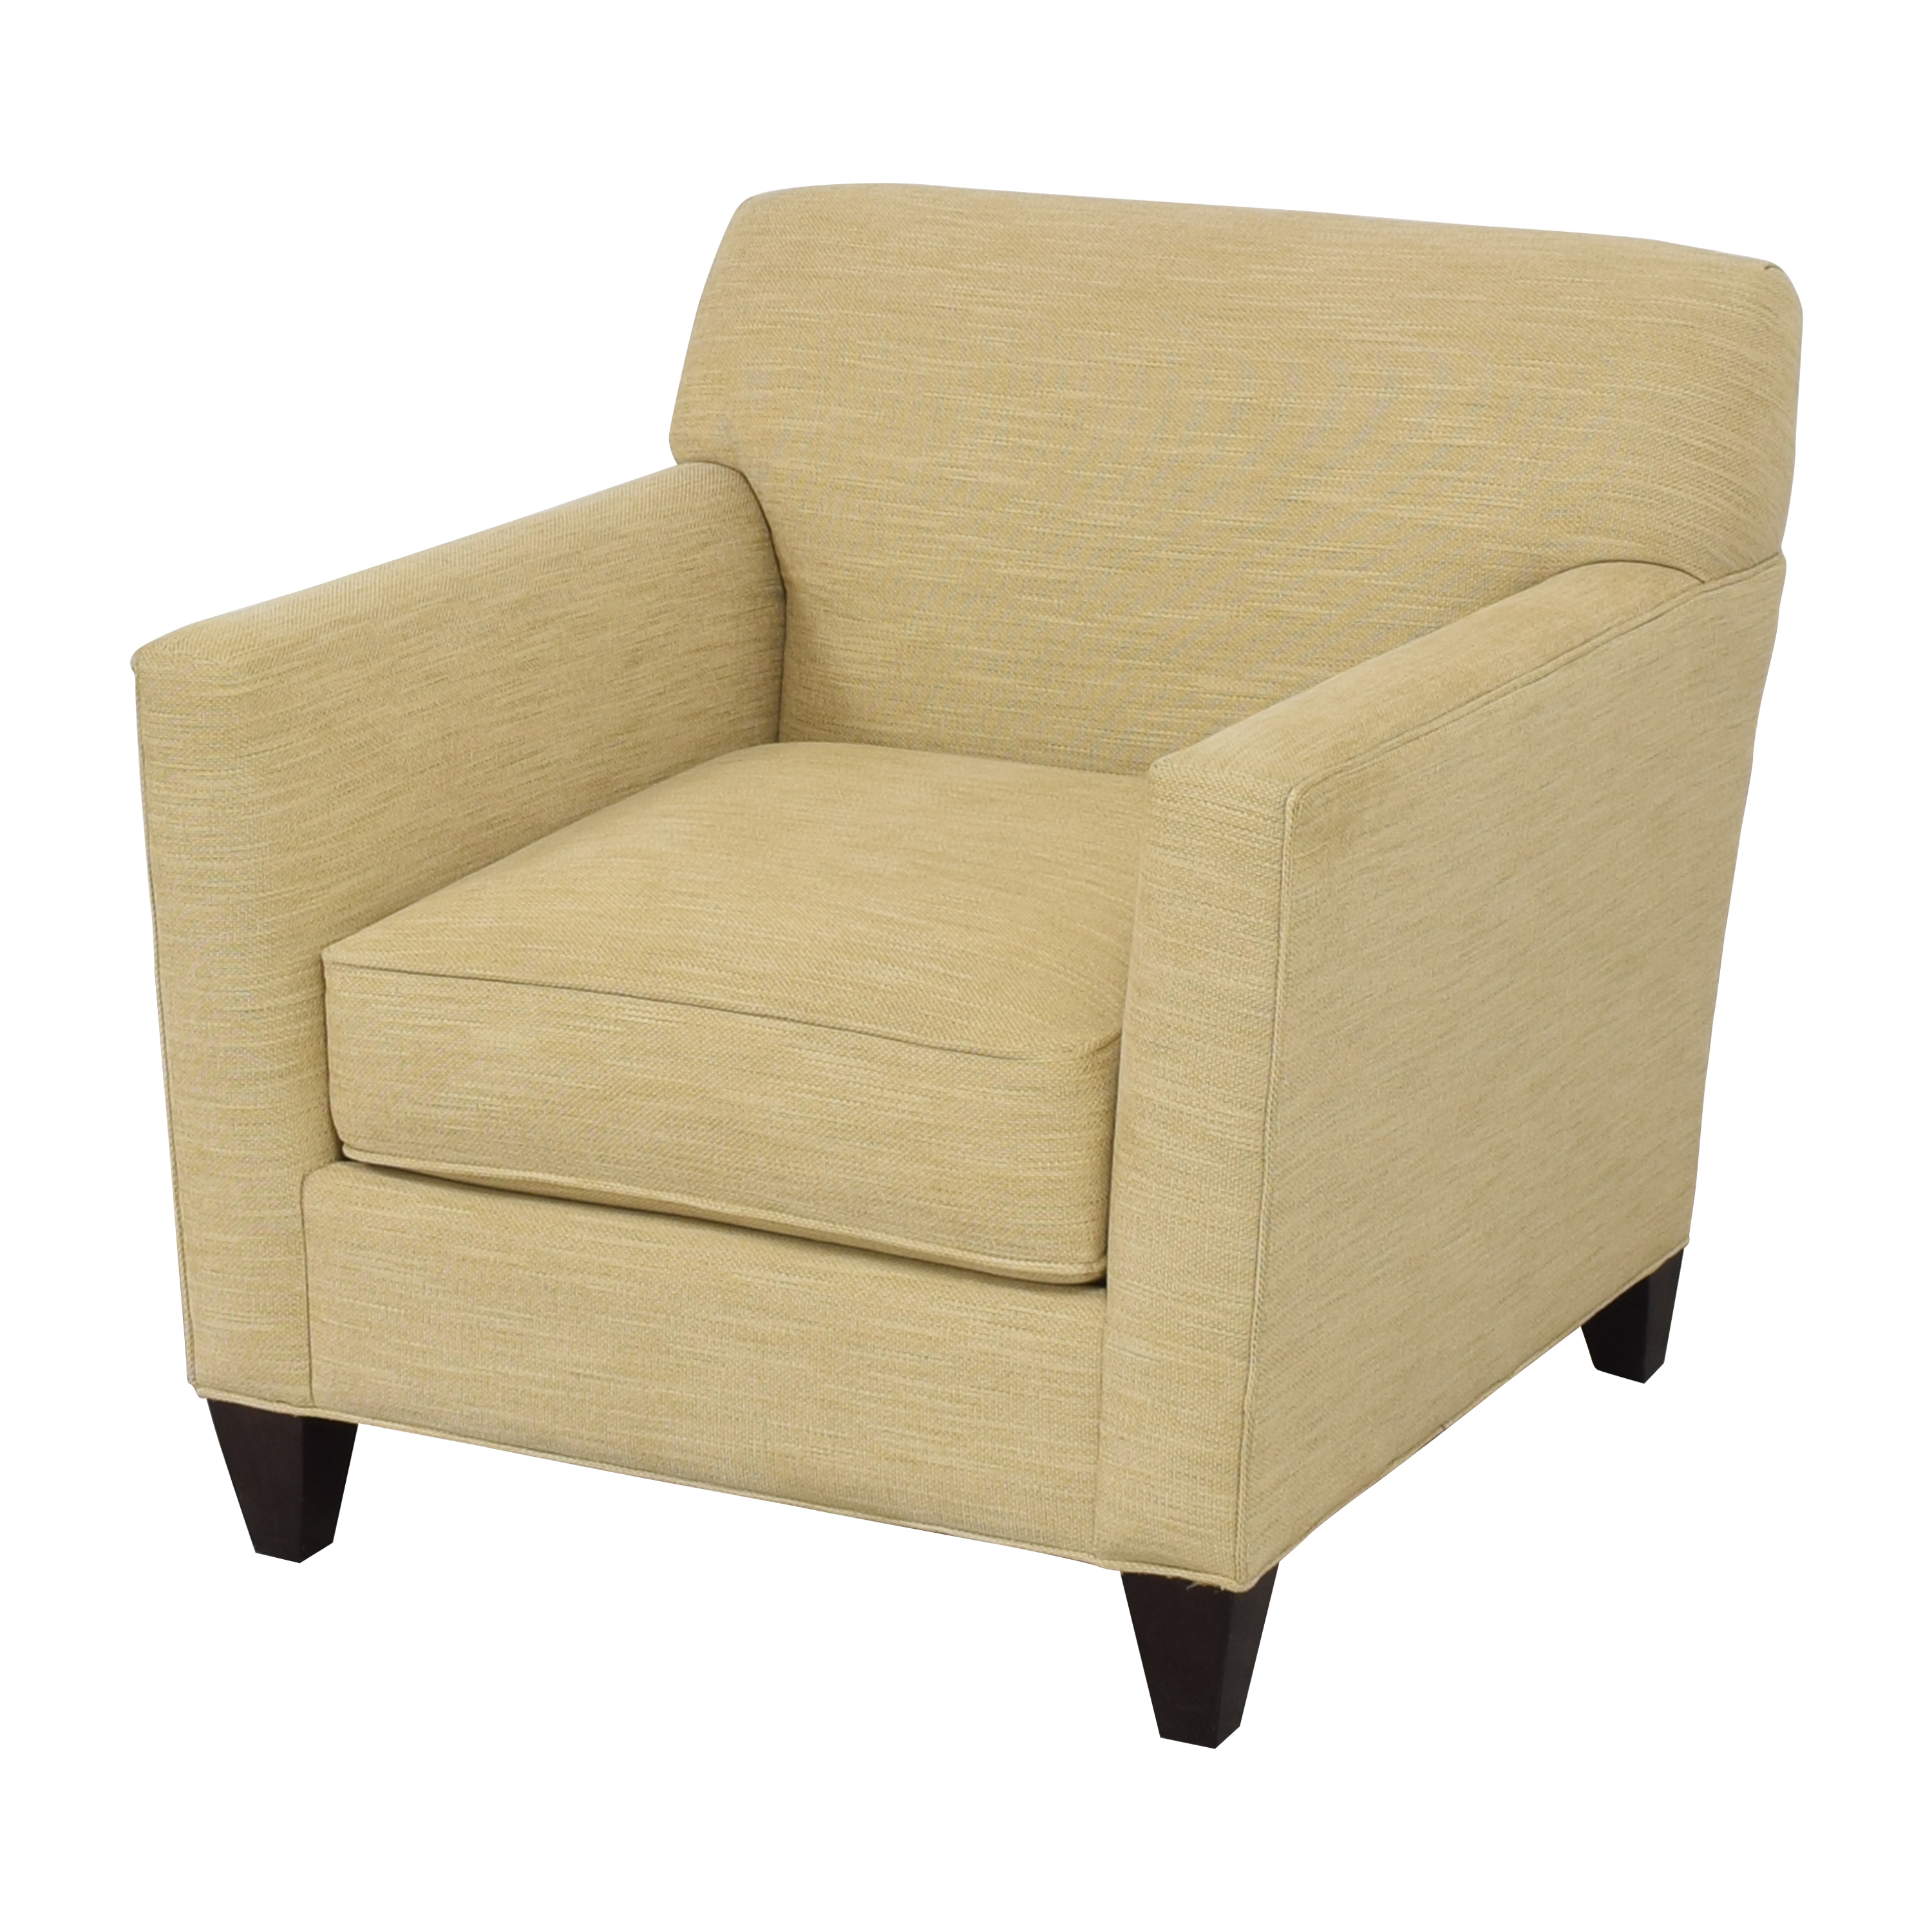 buy Crate & Barrel Hennessy Chair Crate & Barrel Accent Chairs